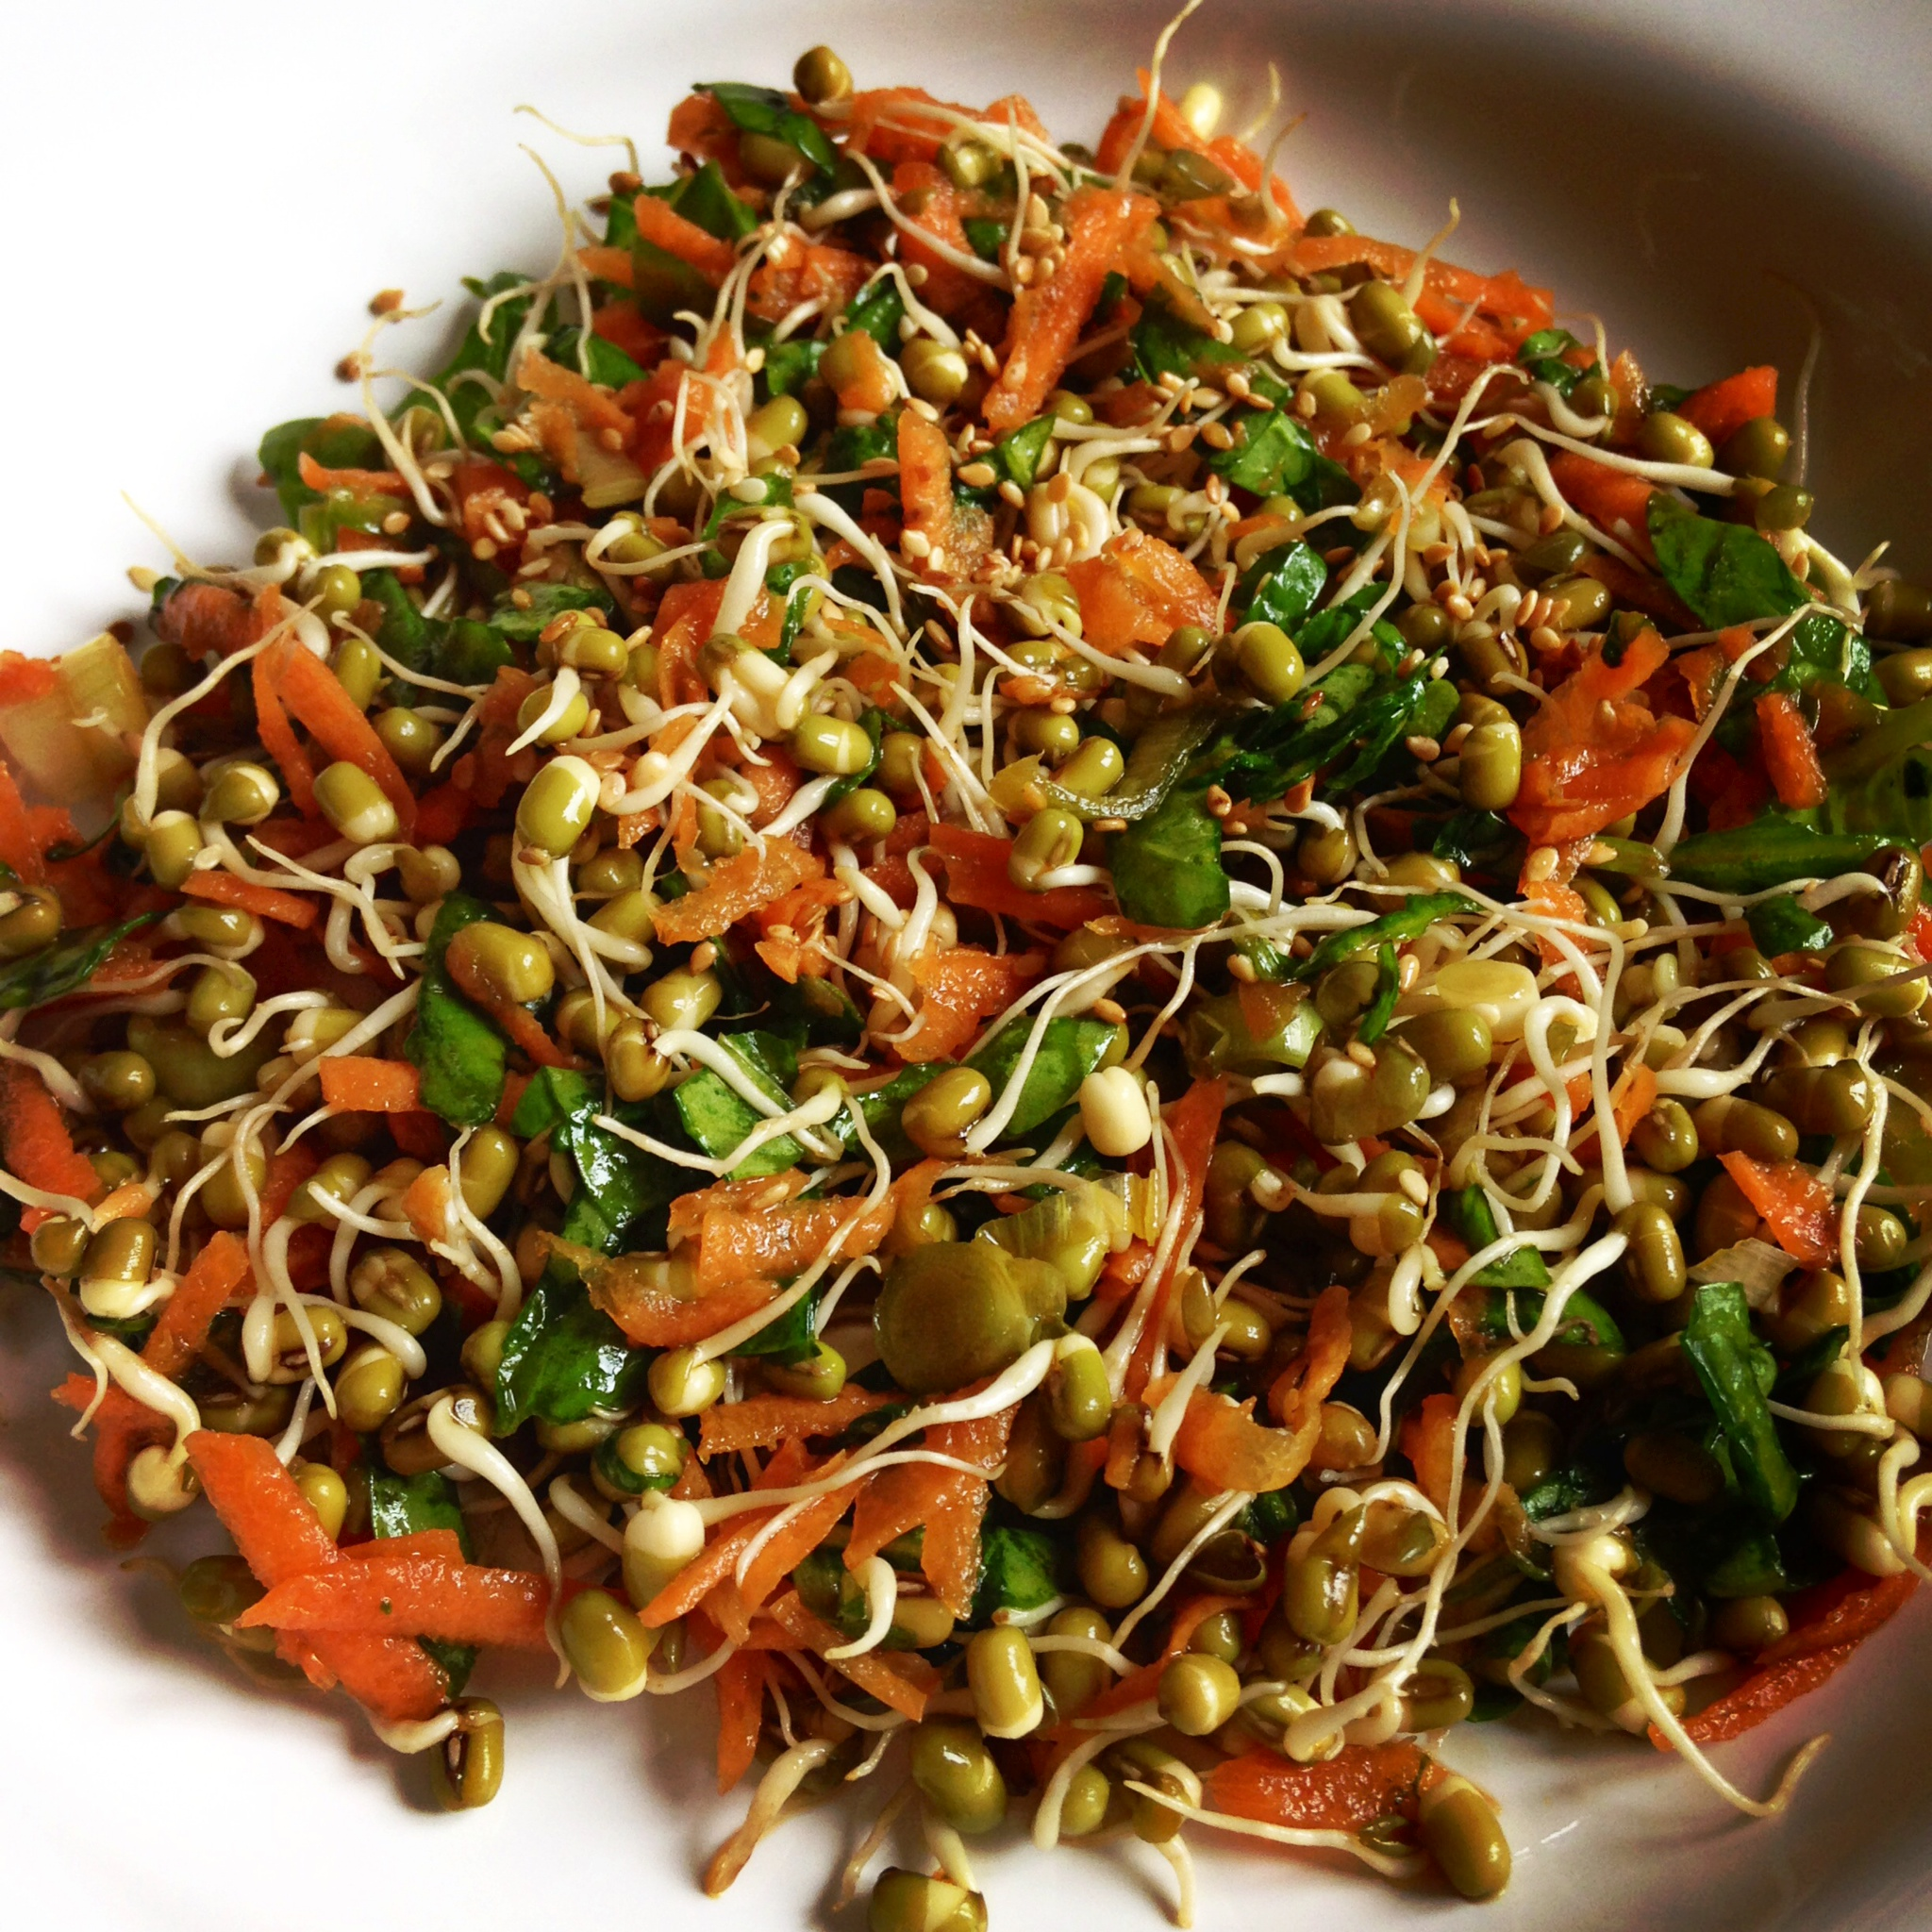 Sprouted Mung Bean Salad in Tamari Ginger Dressing